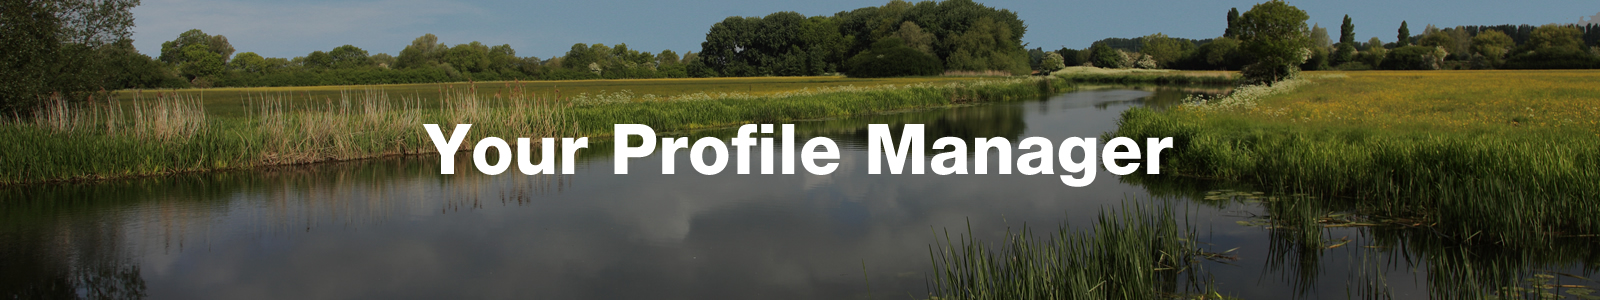 your profile manager